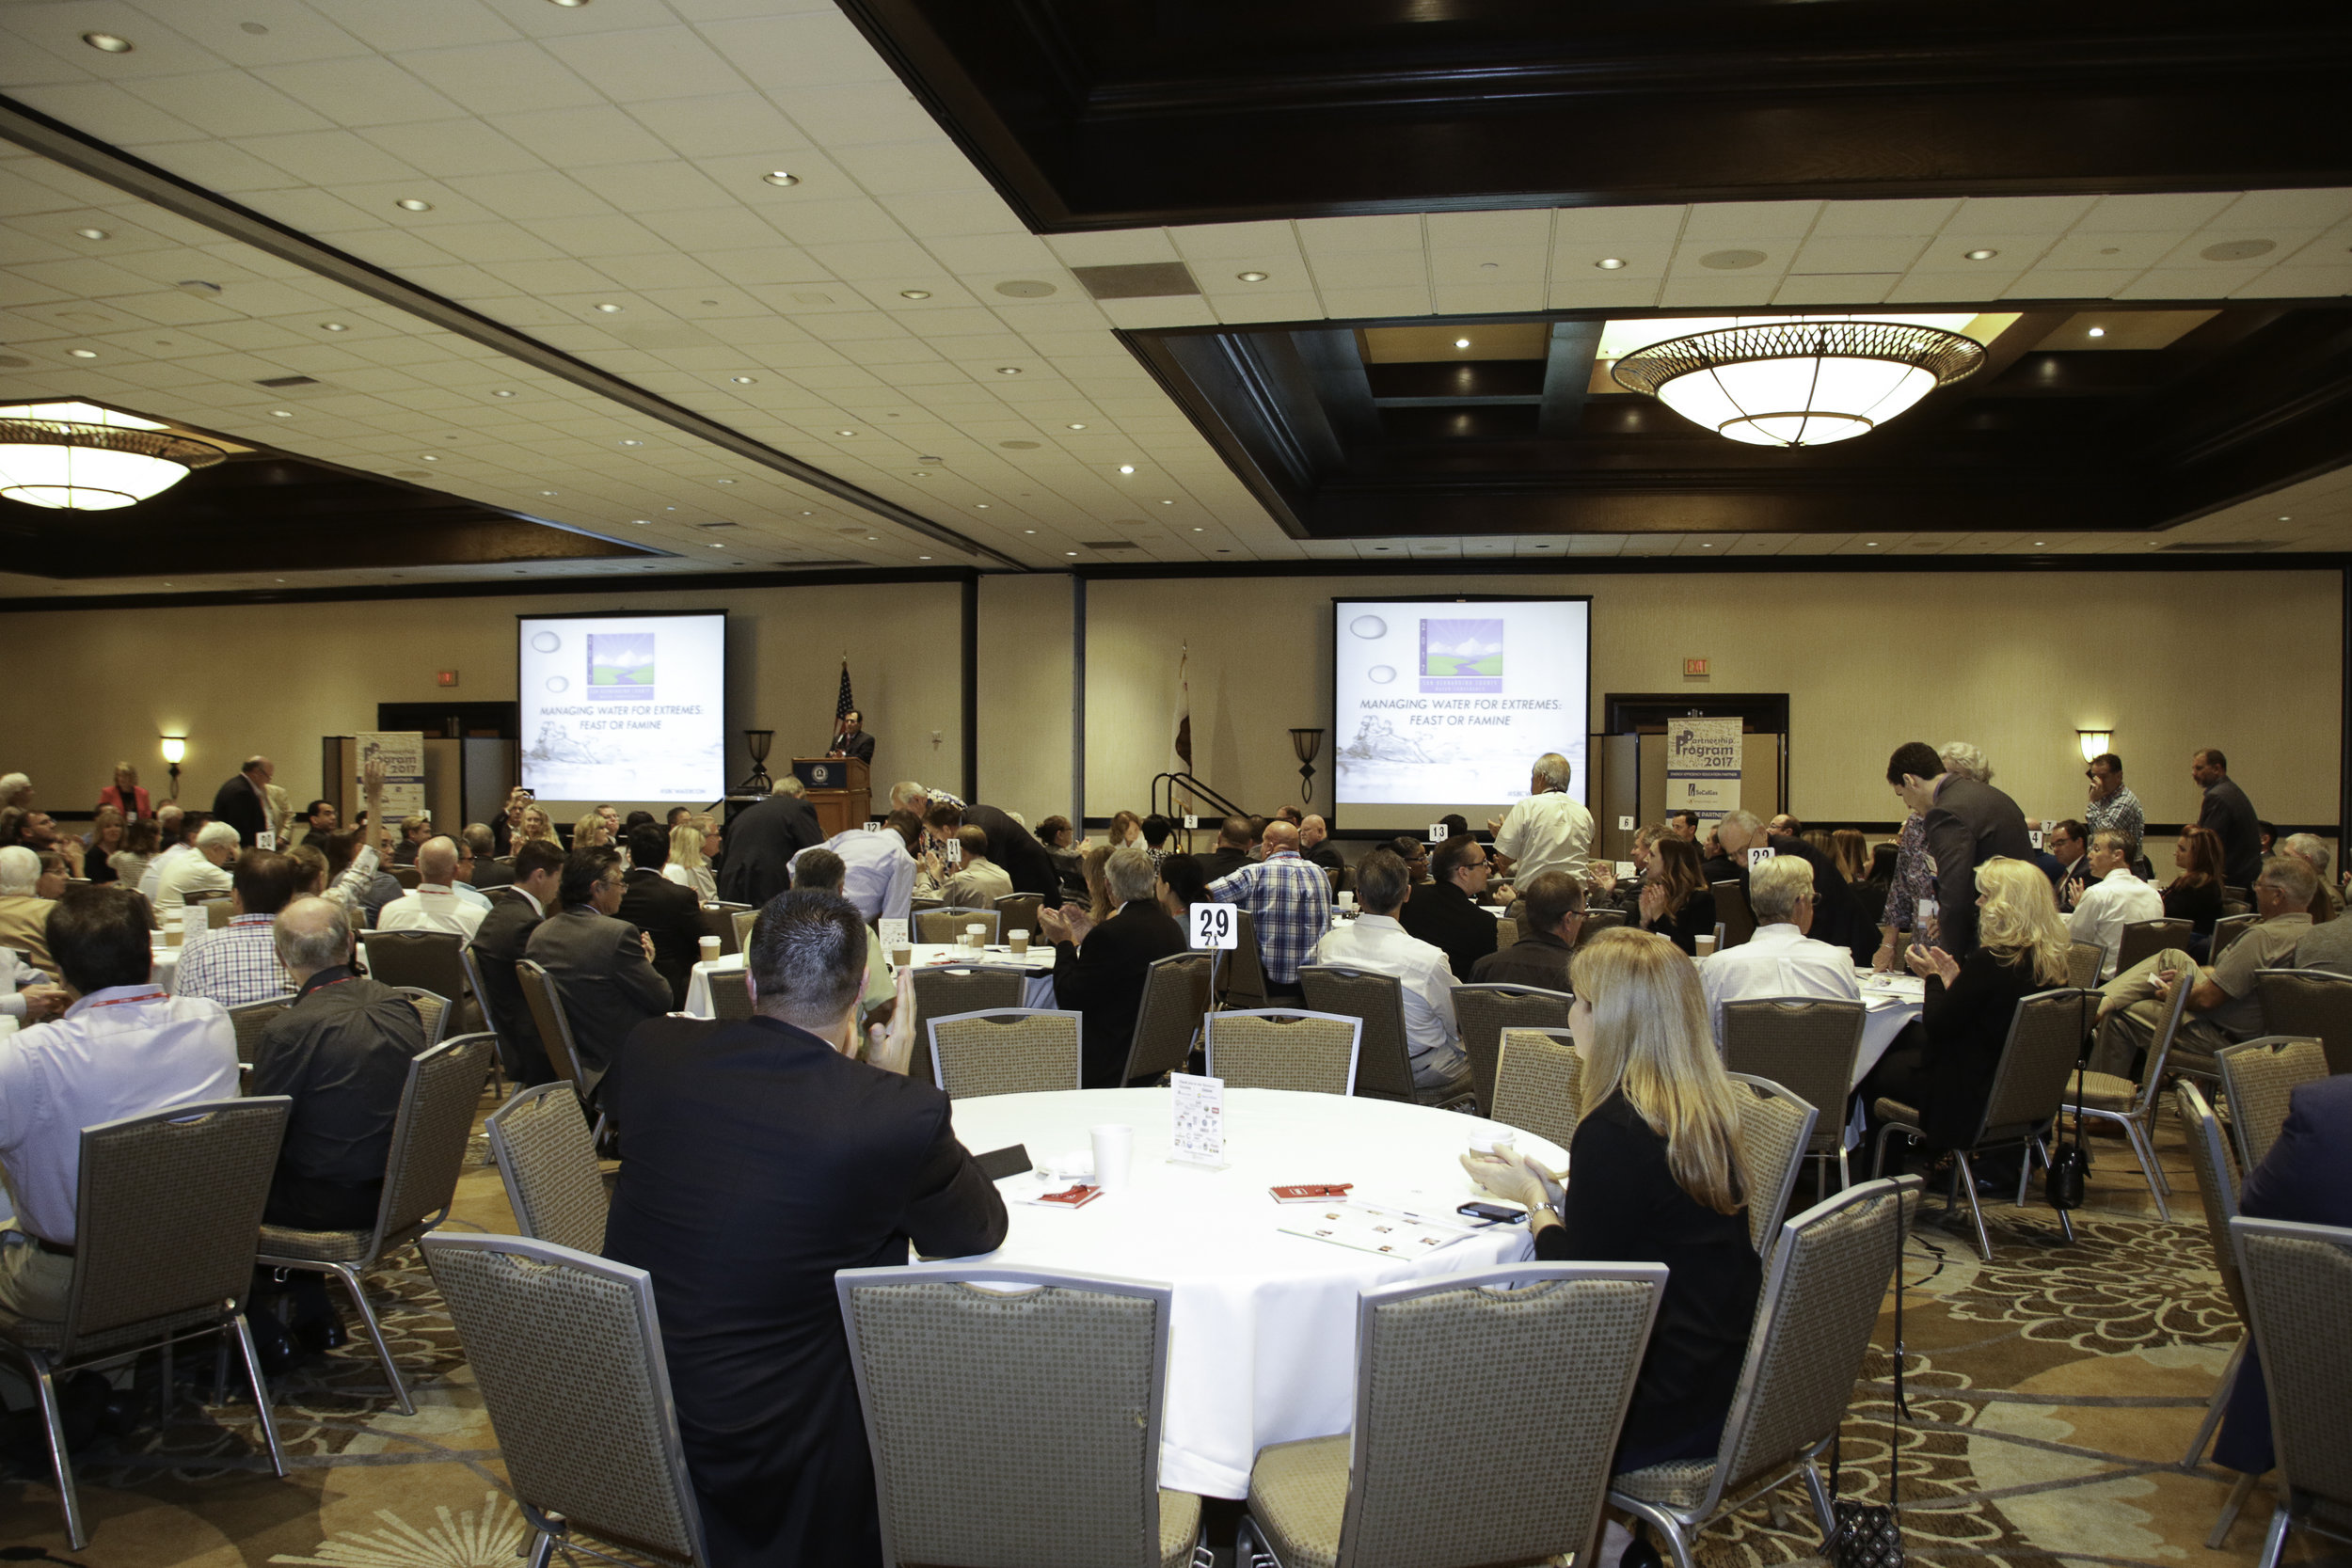 Over 300 attendees registered for the 11th Annual San Bernardino County Water Conference